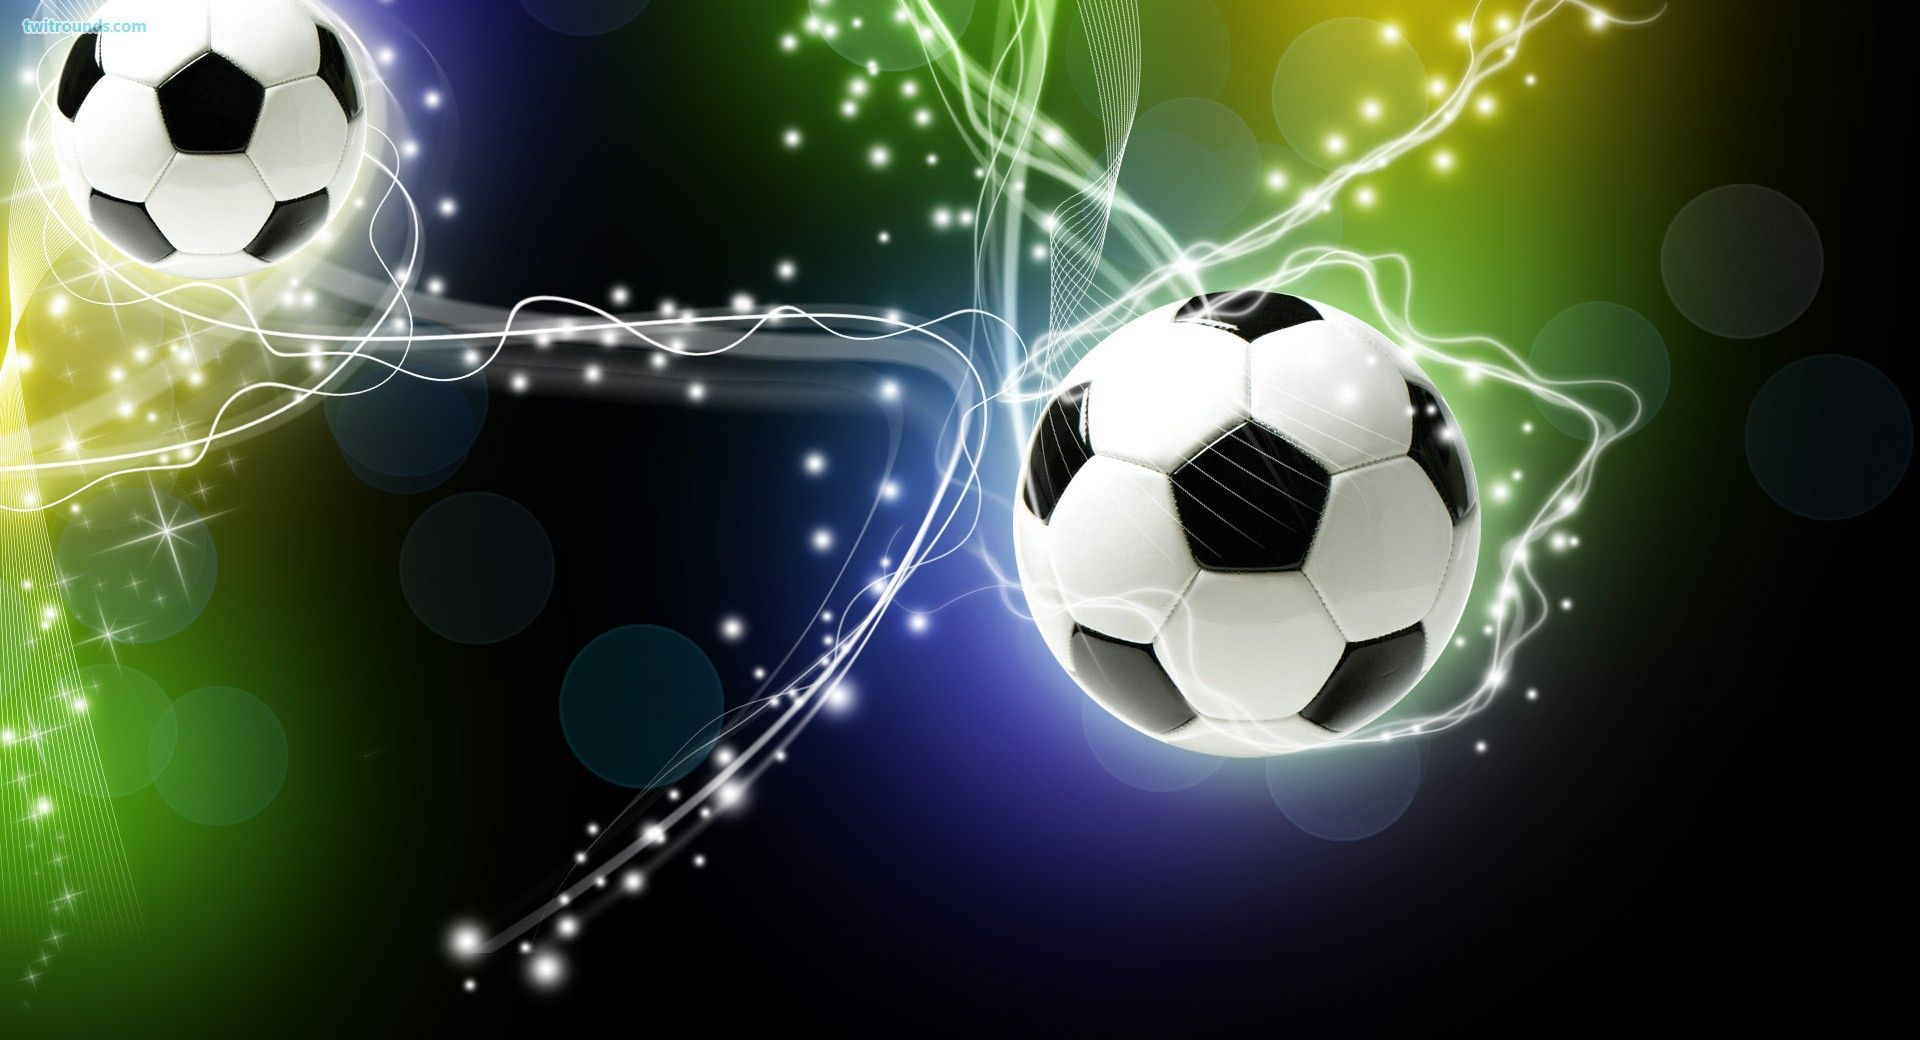 Cool Soccer Pictures Hd Wallpapers Backgrounds Of Your Choice Soccer Ball Soccer Pictures Soccer Backgrounds